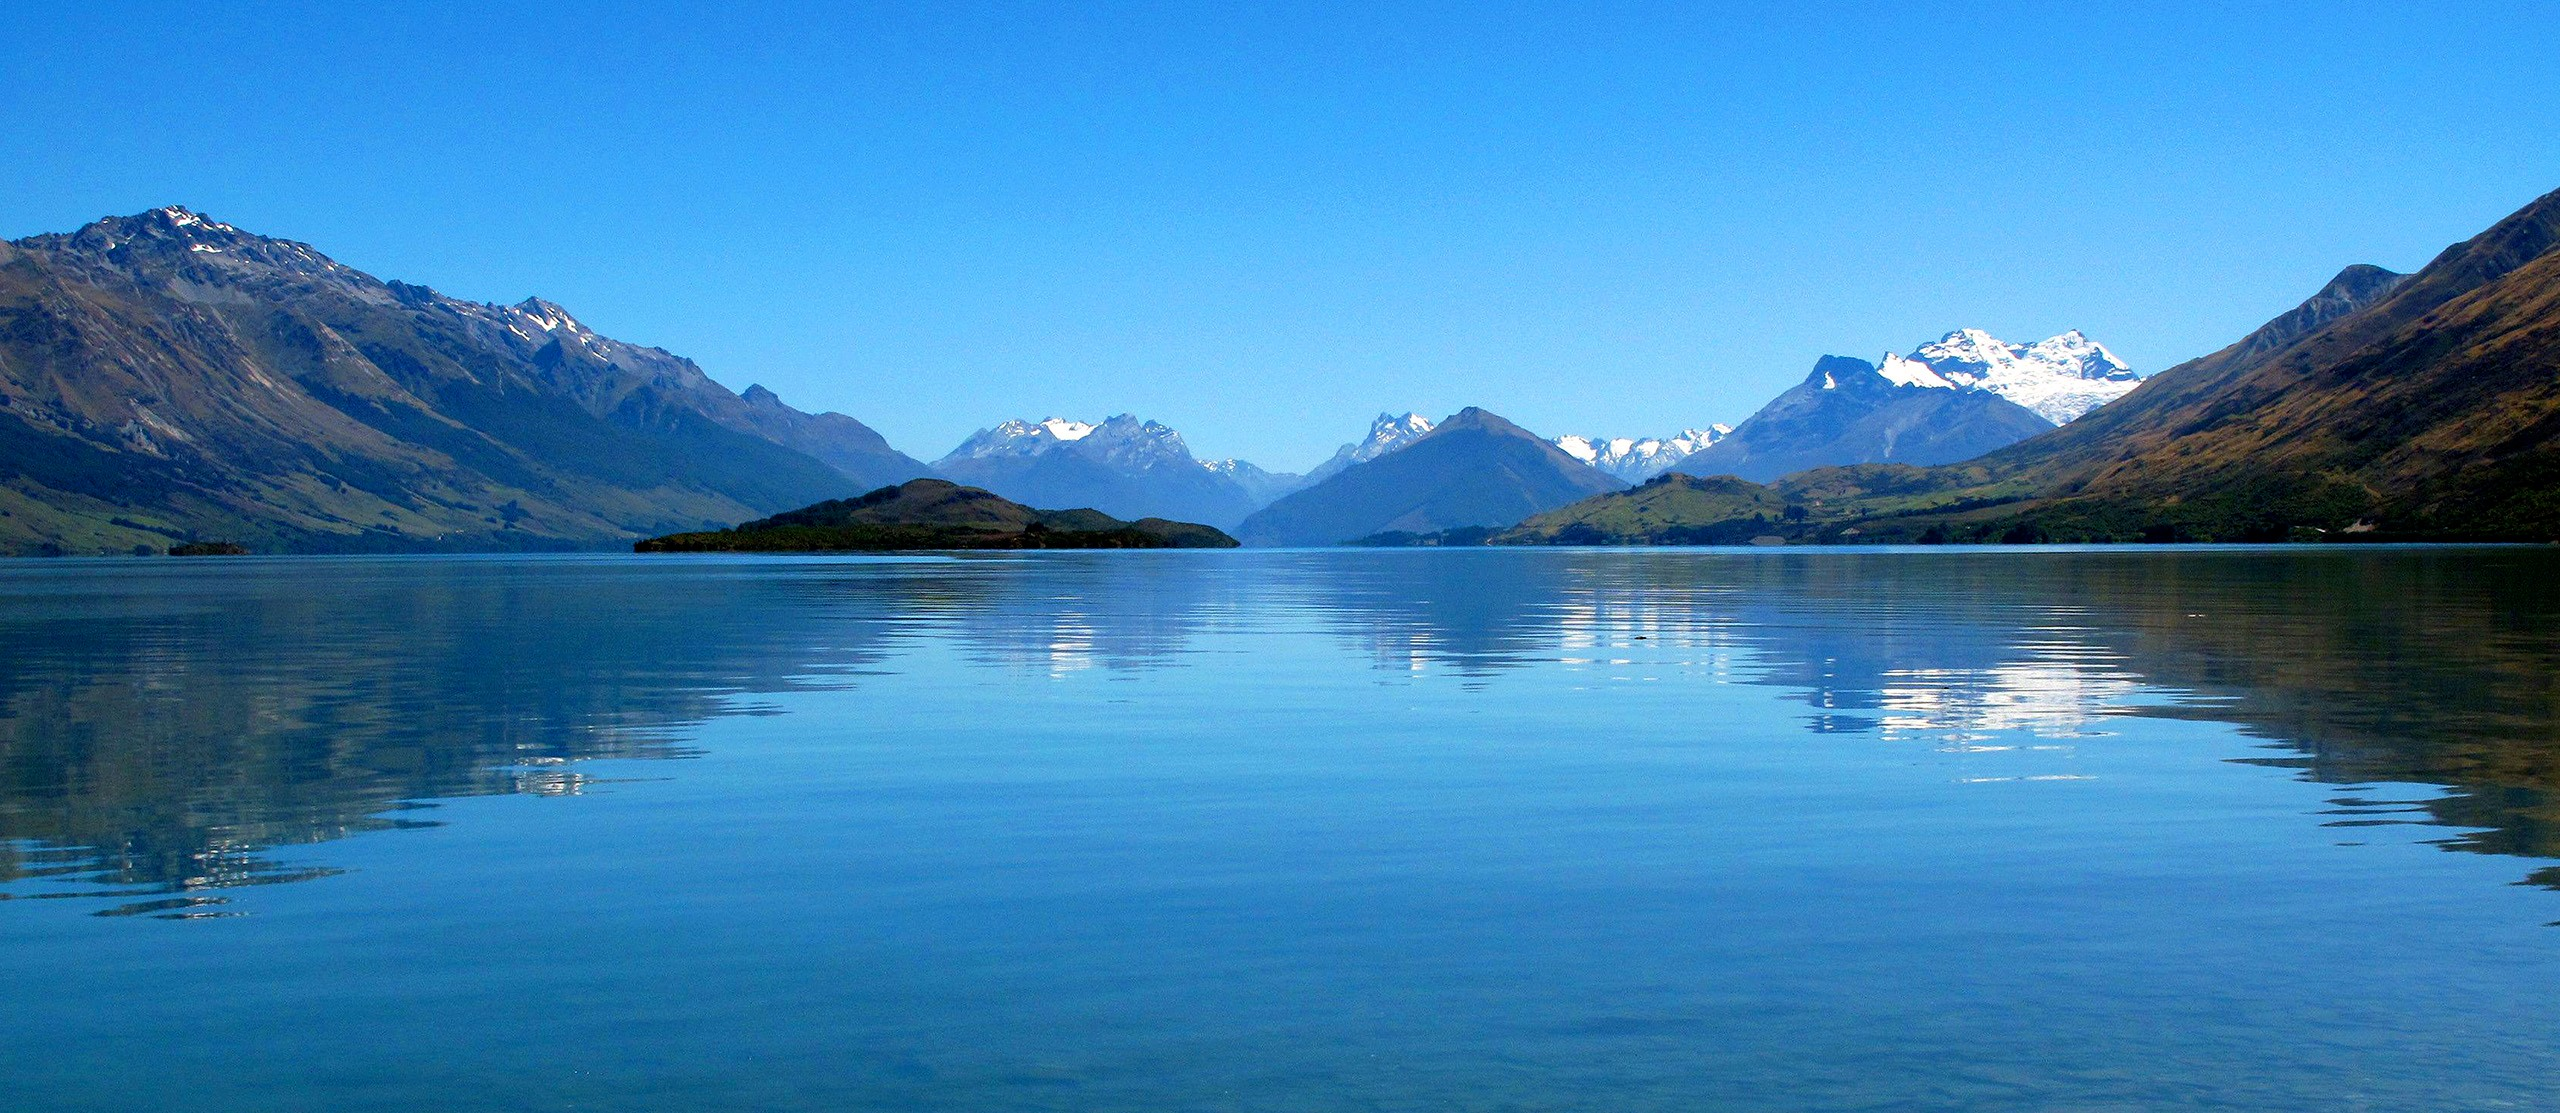 Lake Wakatipu Reflection pano